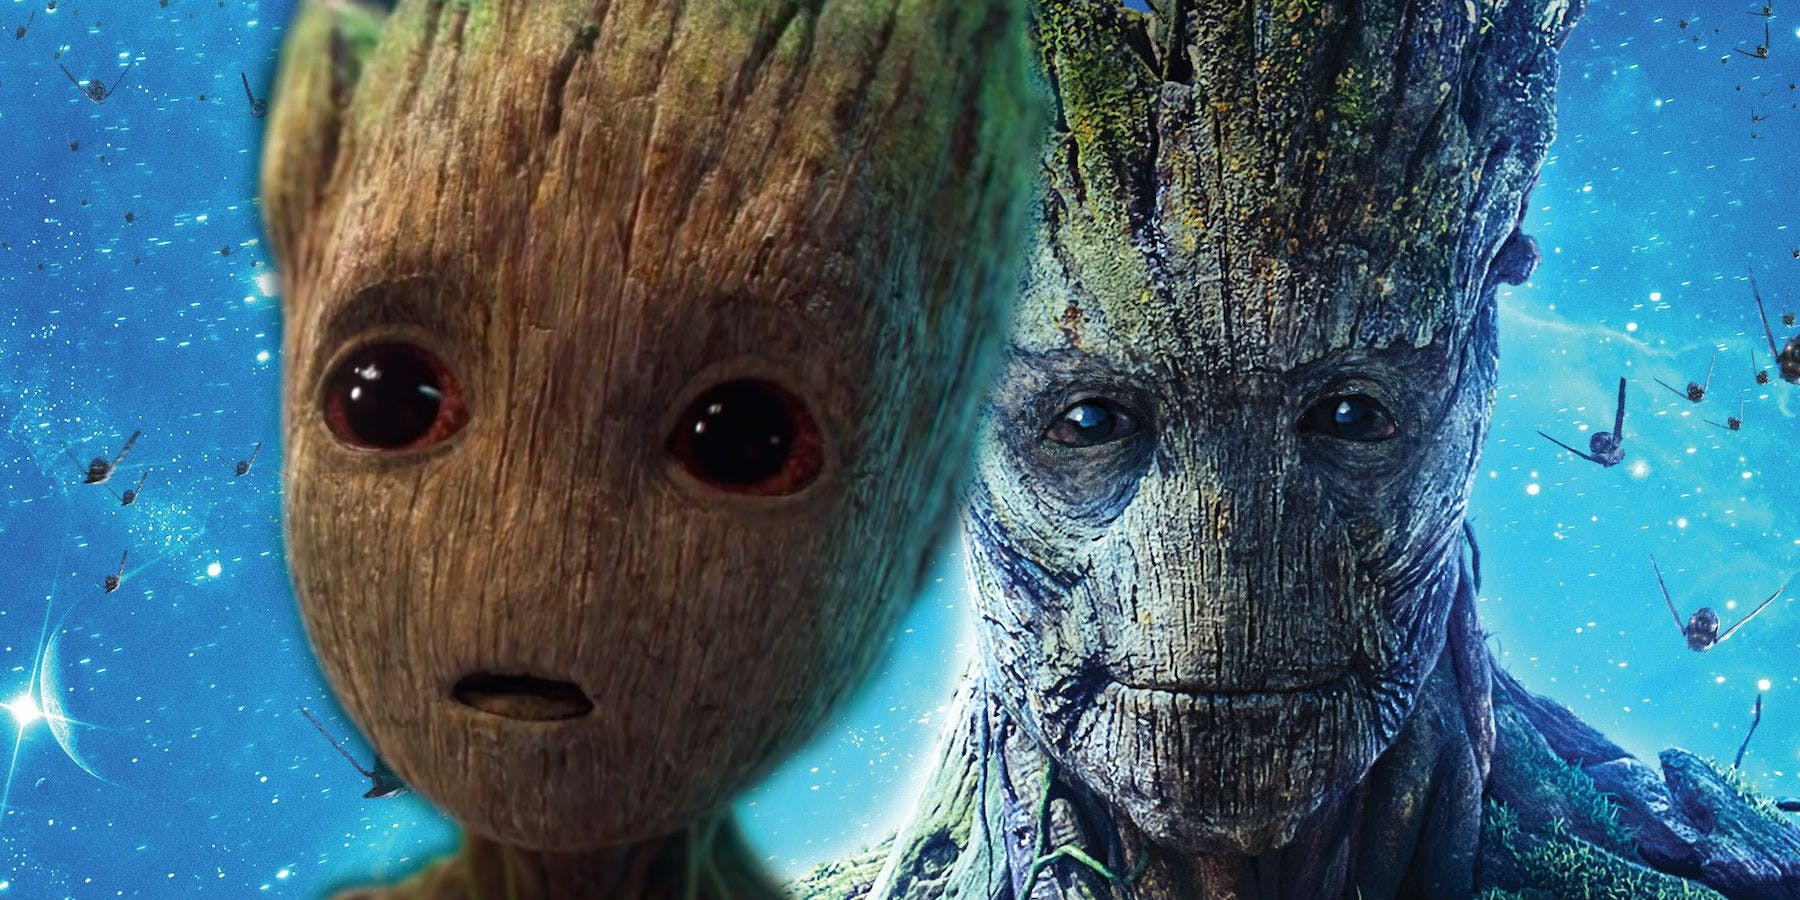 Groot and Baby Groot